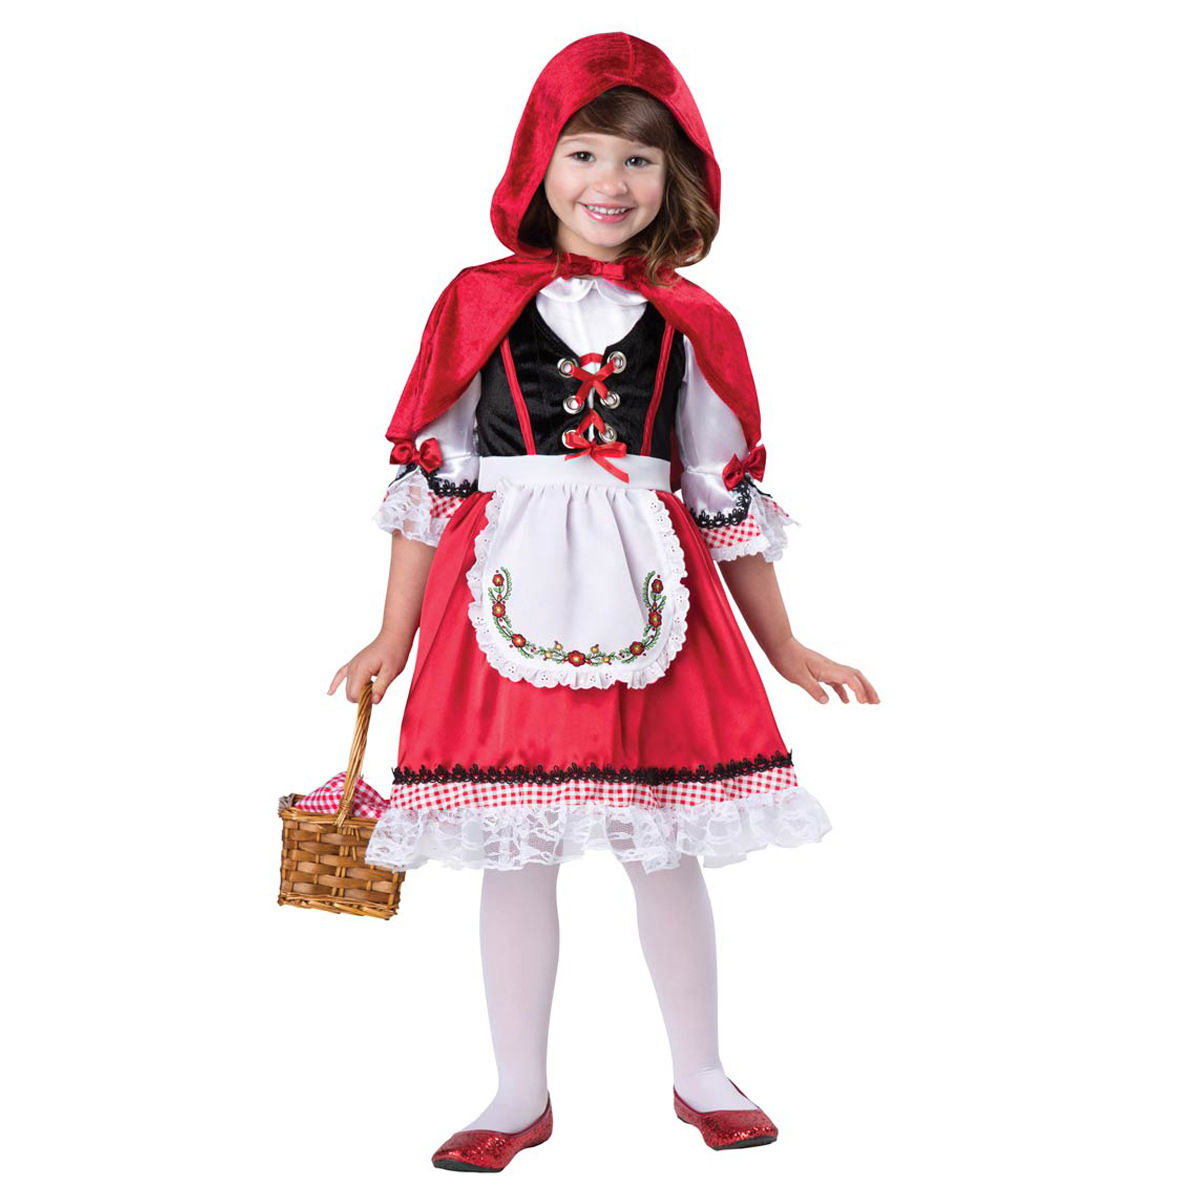 Halloween costumes childrens Halloween cos costumes small red cap role playing costumes hooded girls small red cap costumes